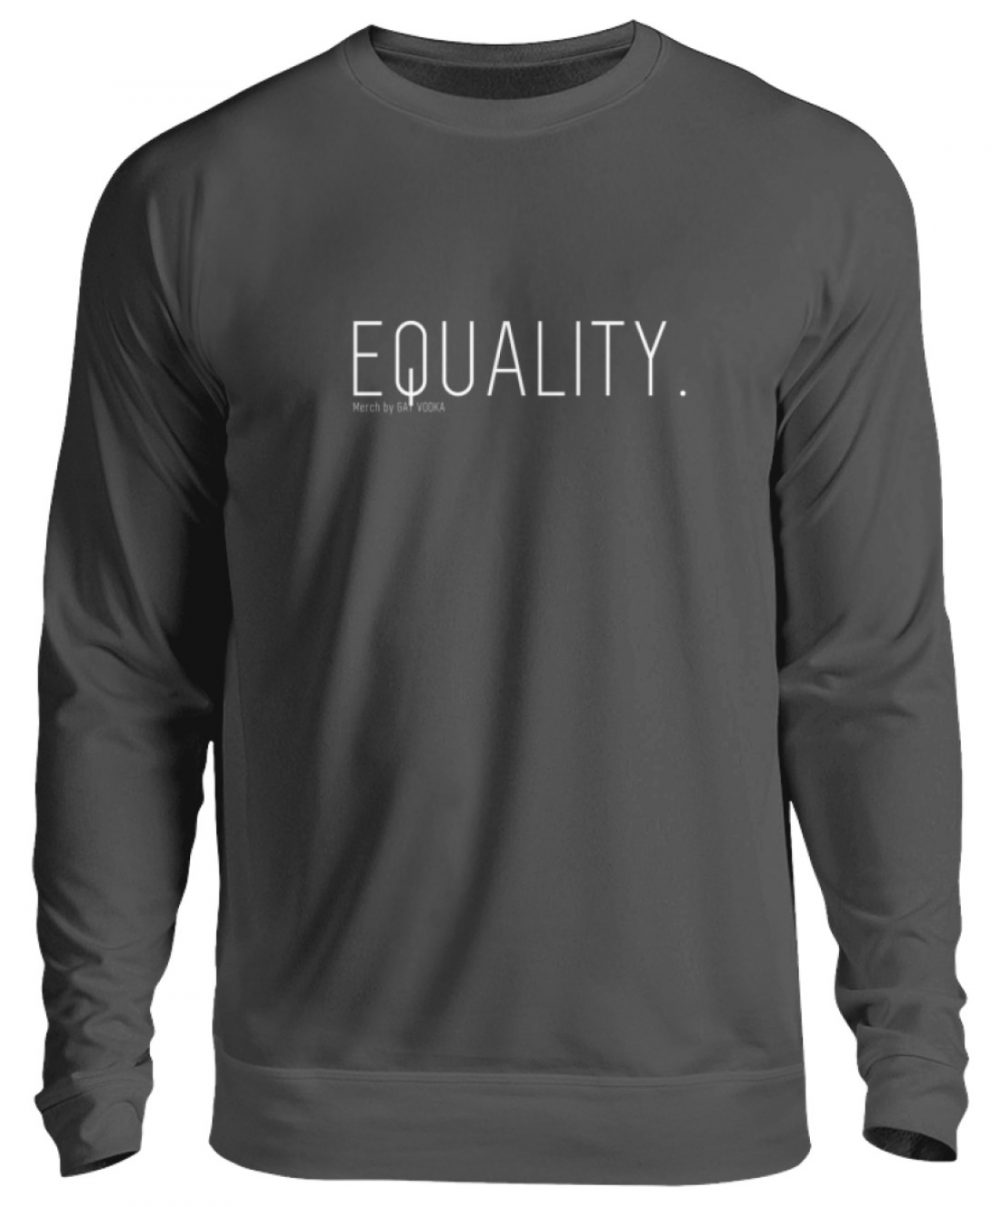 EQUALITY. - Unisex Pullover-1768